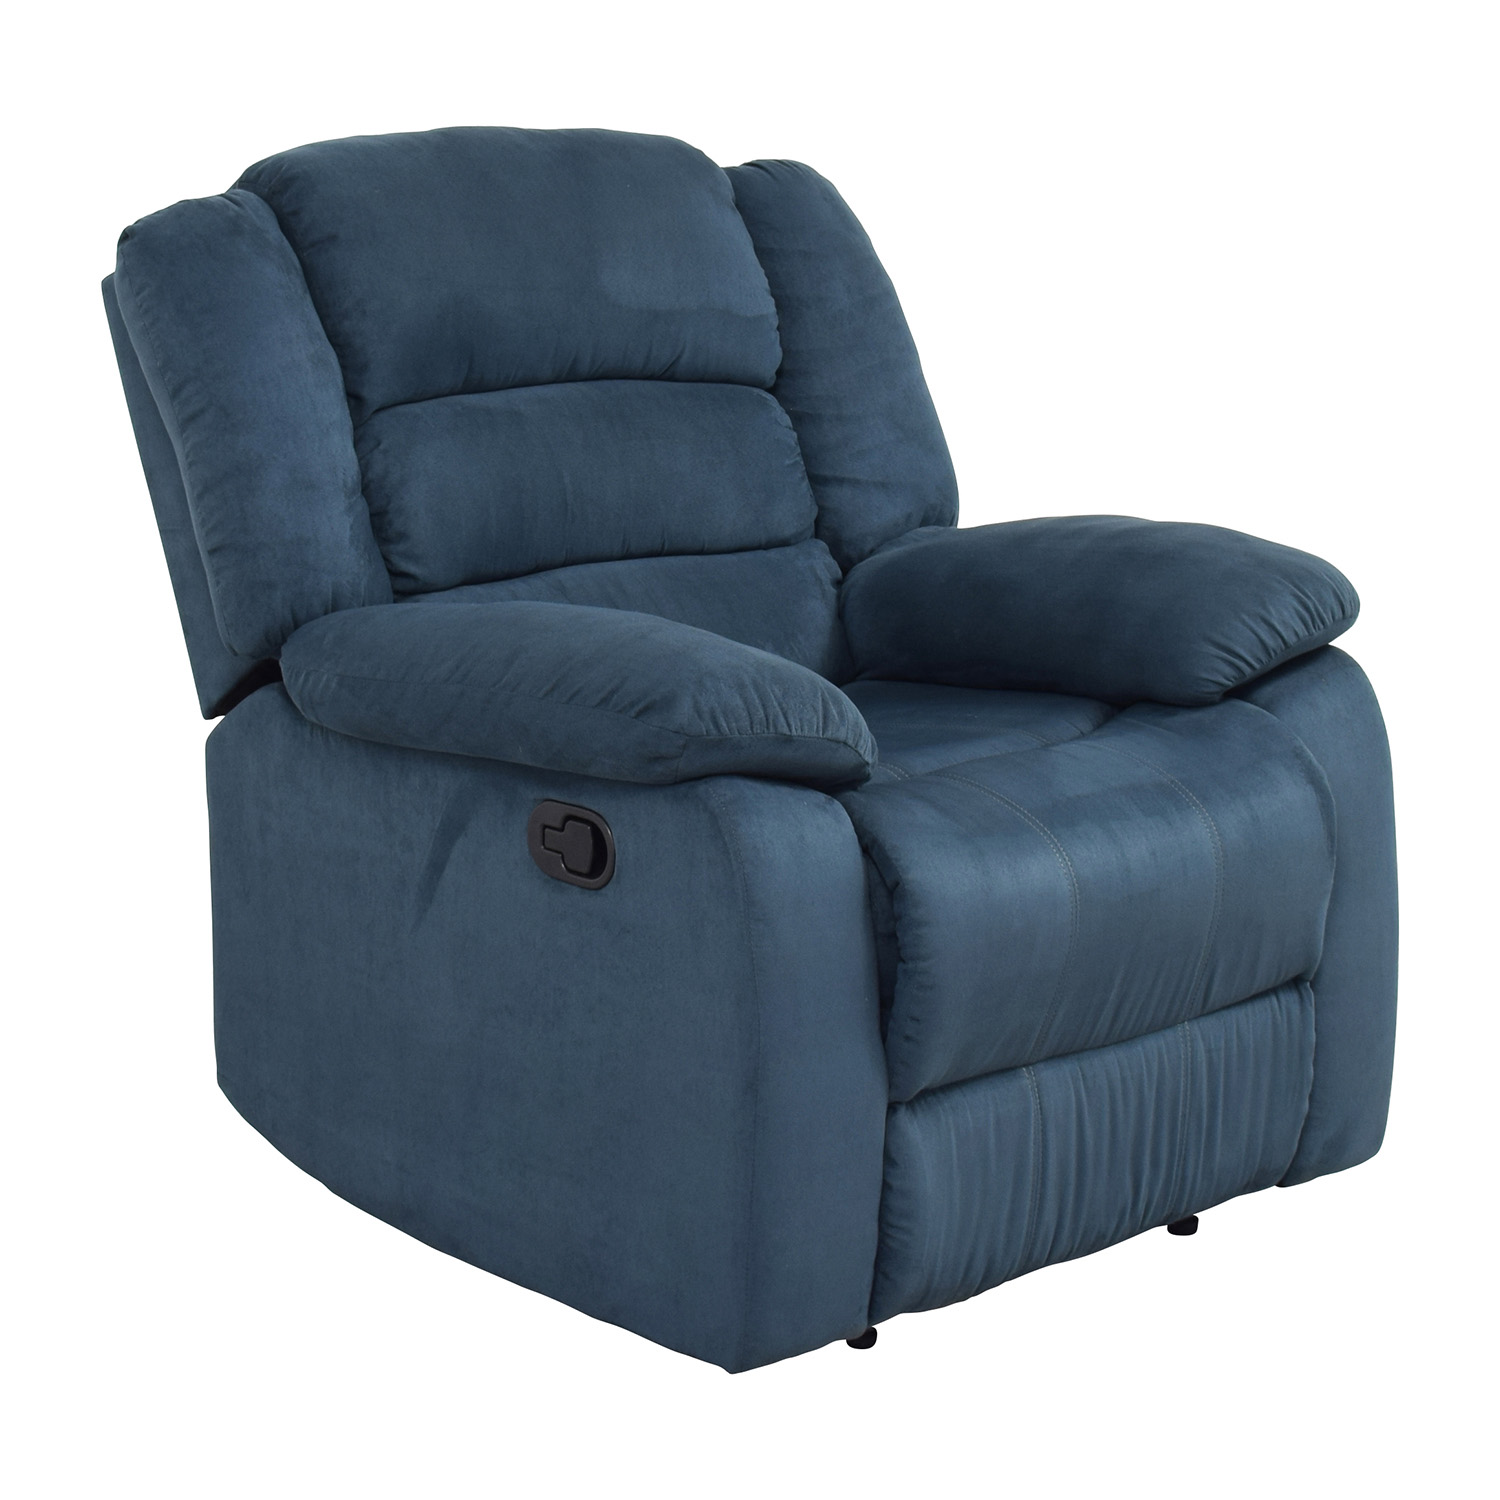 Nathaniel Home Nathaniel Home Express Addison Contemporary Recliner price